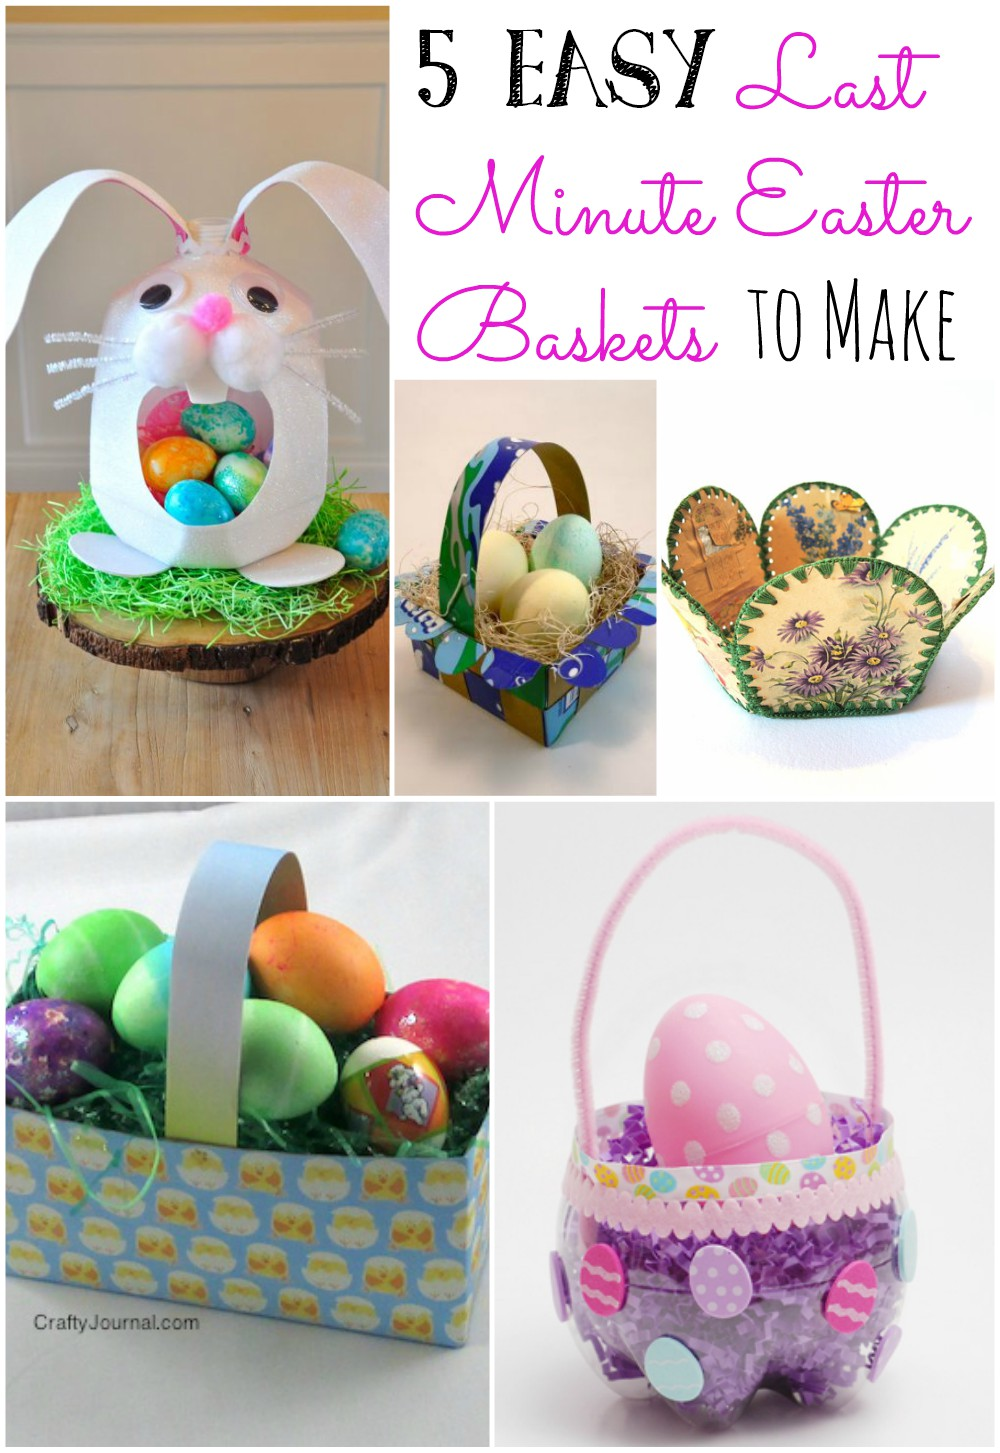 5 Easy Last-Minute Easter Baskets you can make!